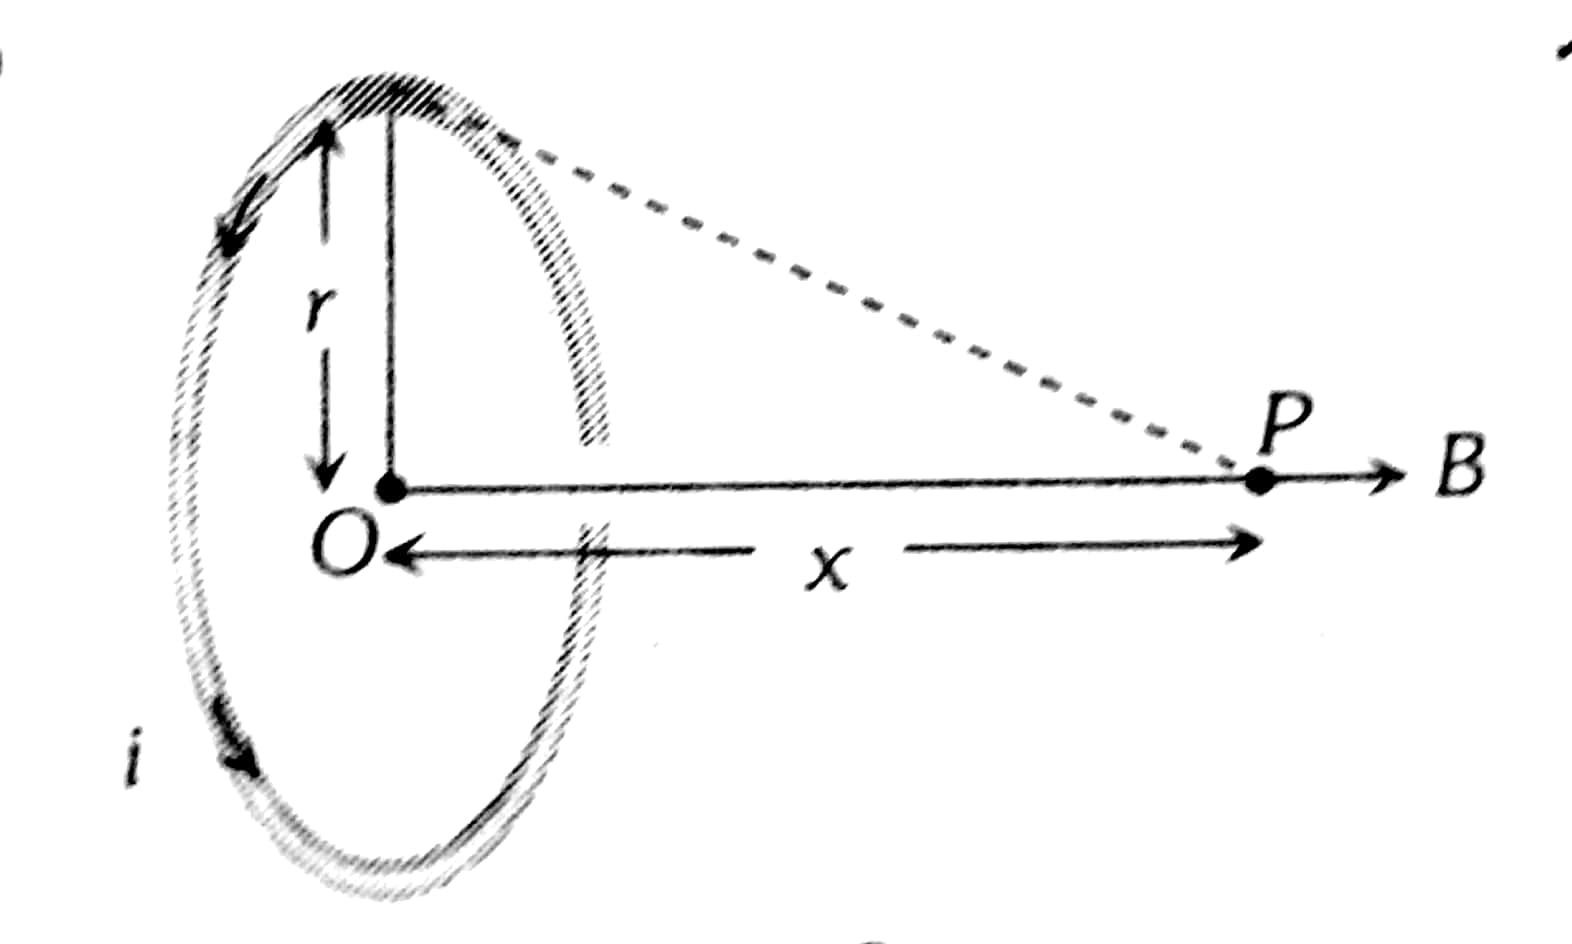 Solve! A non-planar loop of conducting wire carrying a